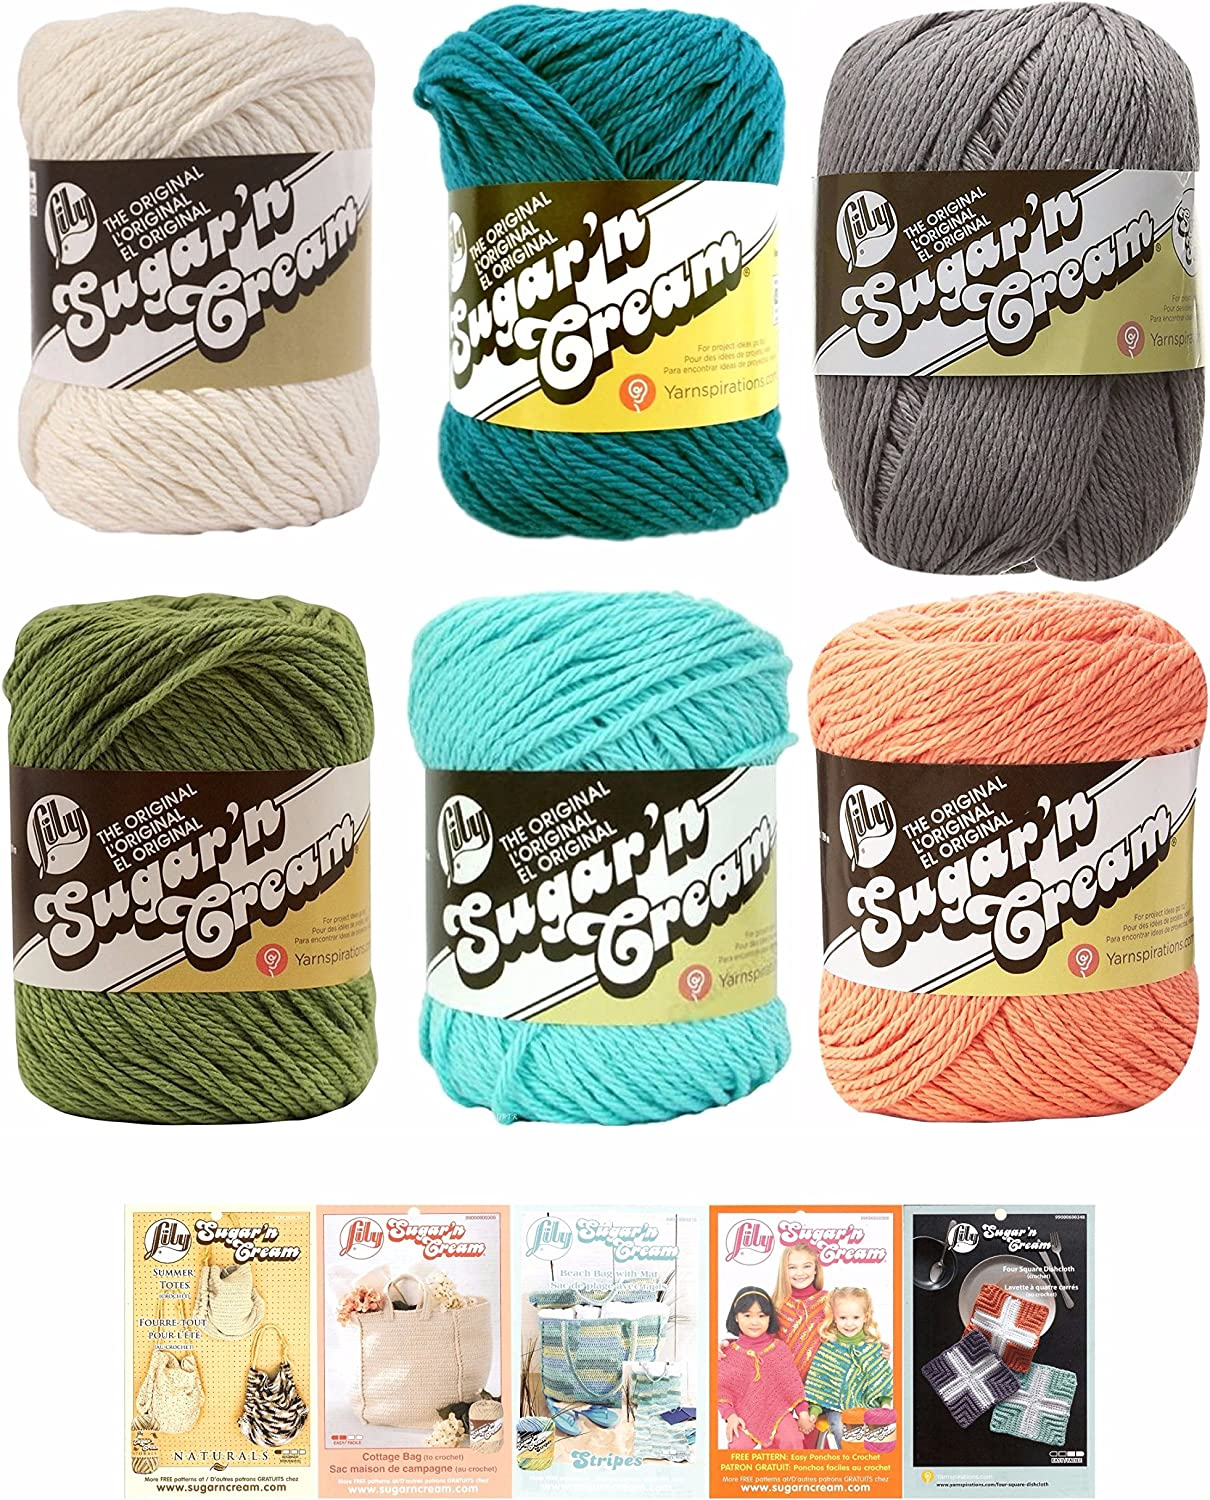 Lily Sugar N Cream Variety Assortment 6 Pack Yarn Bundle With 5 Patterns 100 Percent Cotton Medium 4 Worsted Multicolor